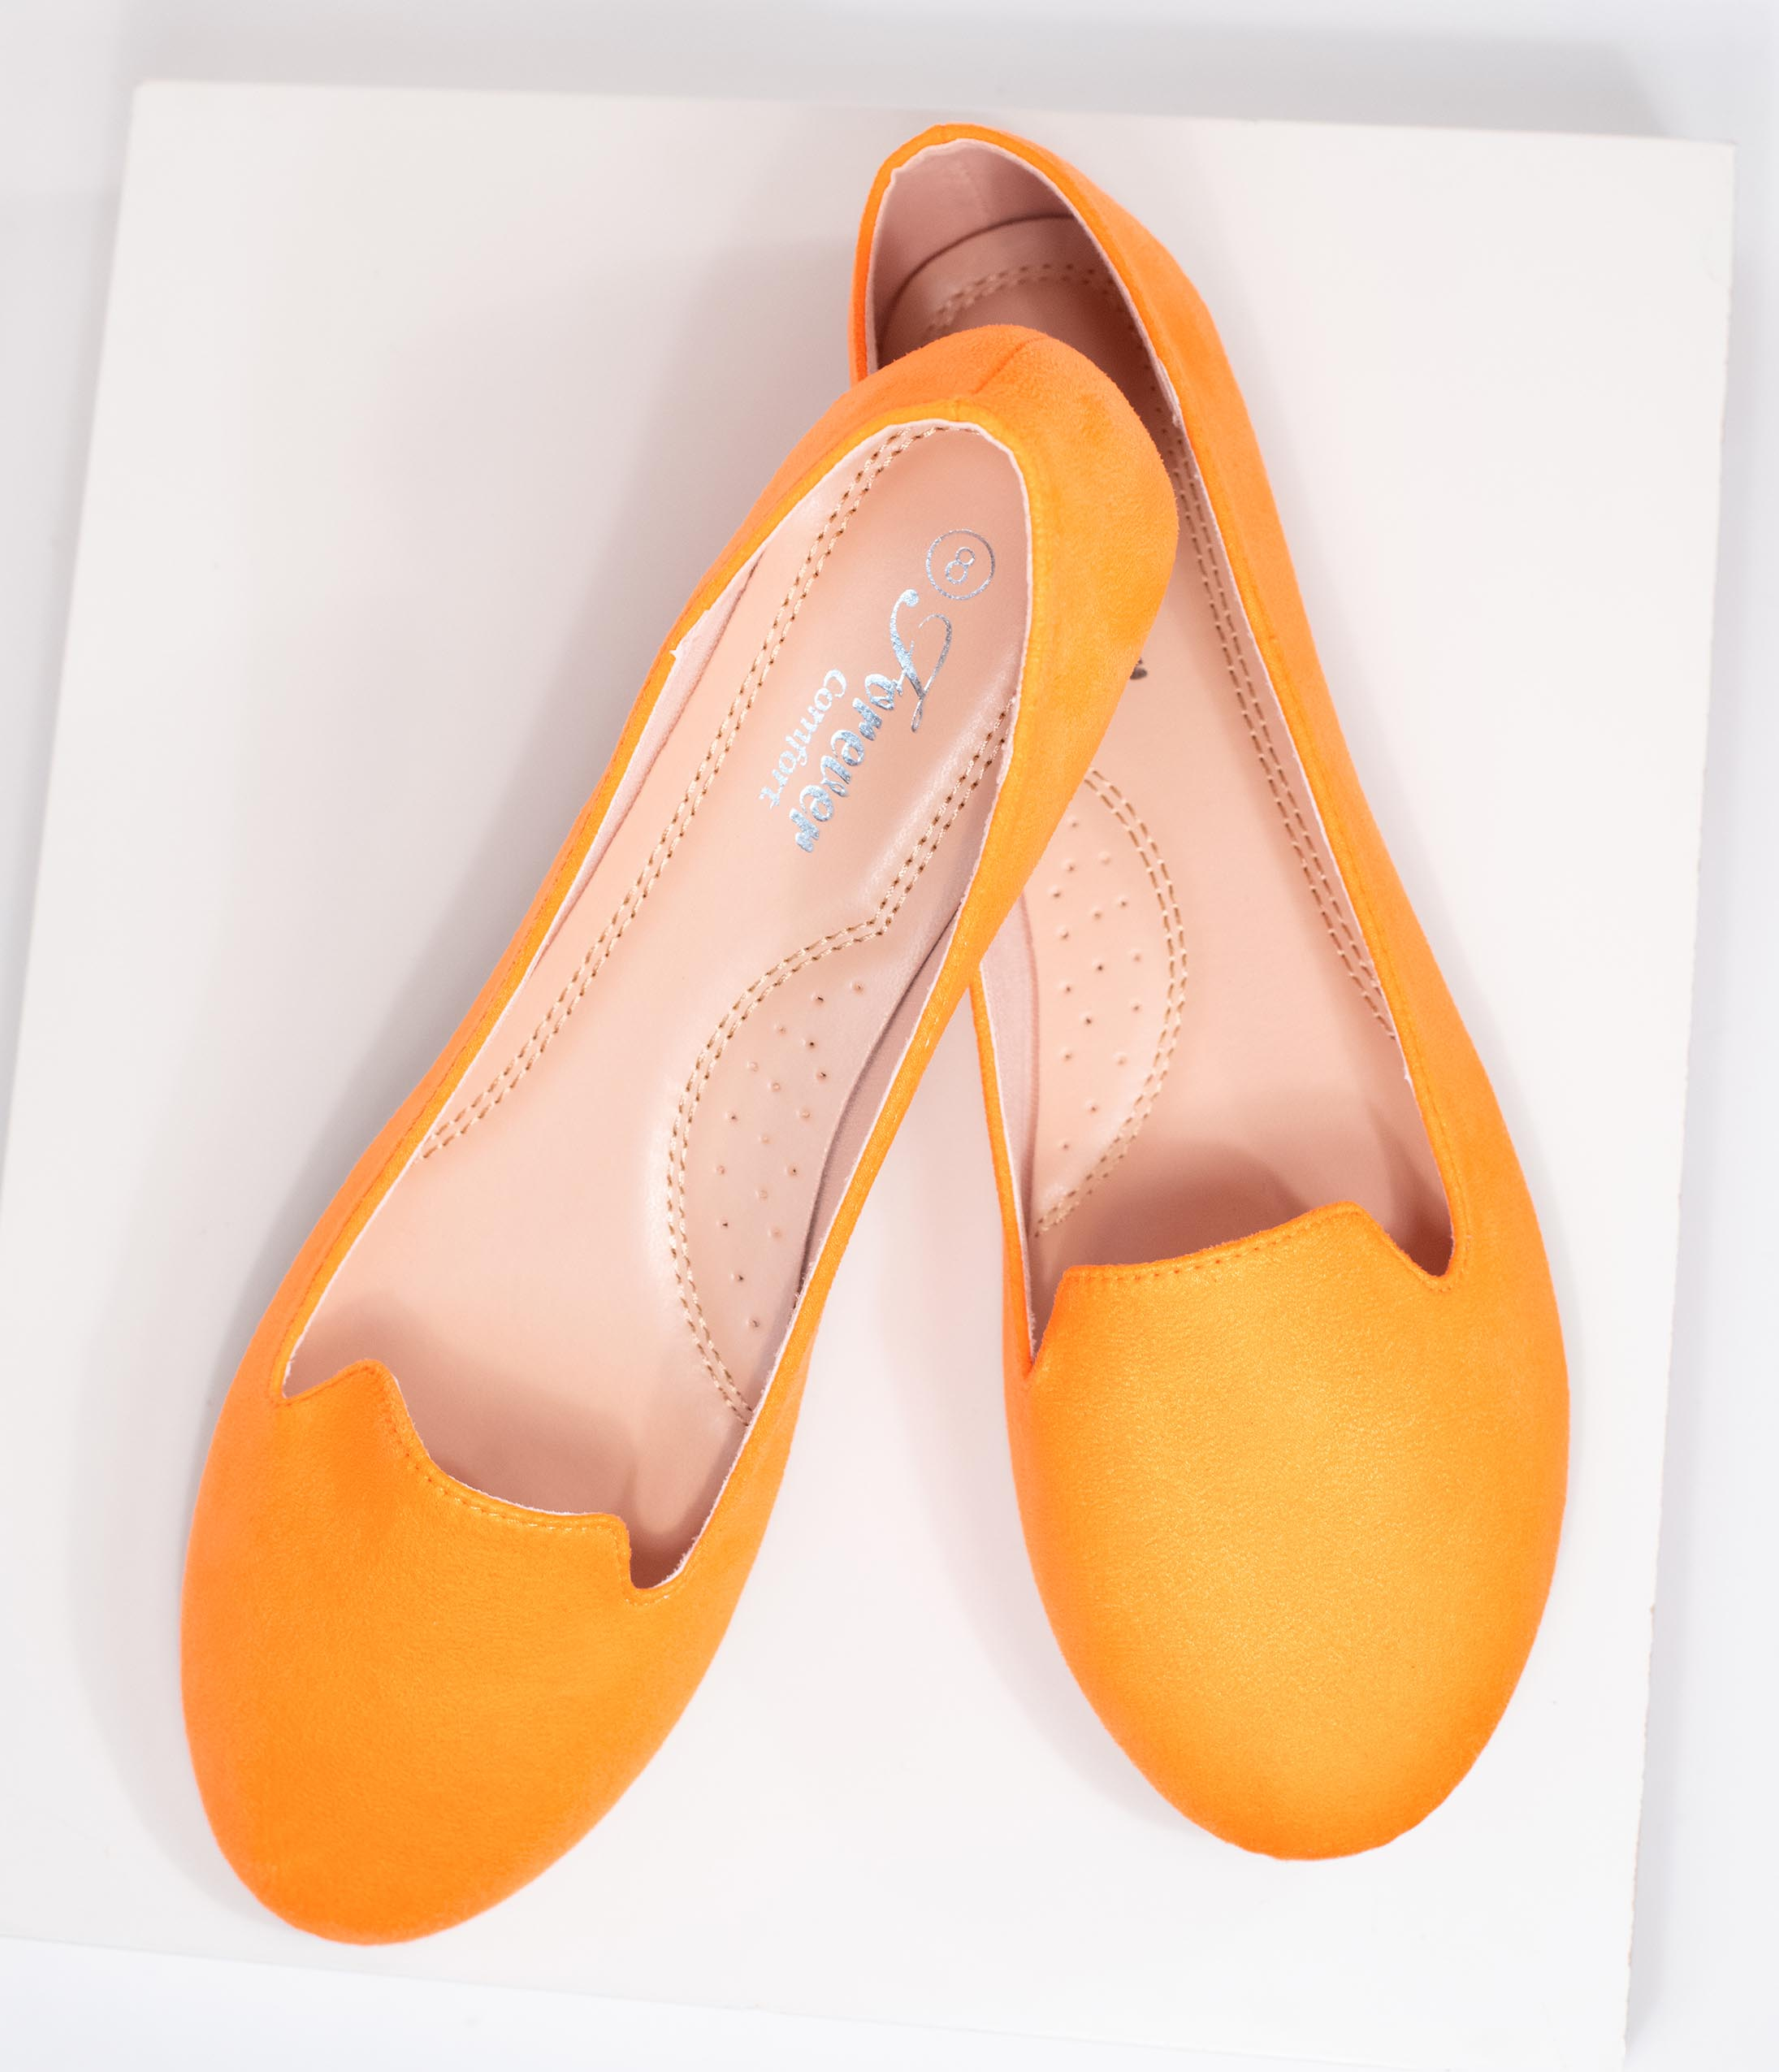 1980s Clothing, Fashion | 80s Style Clothes Neon Orange Suede Loafers $42.00 AT vintagedancer.com